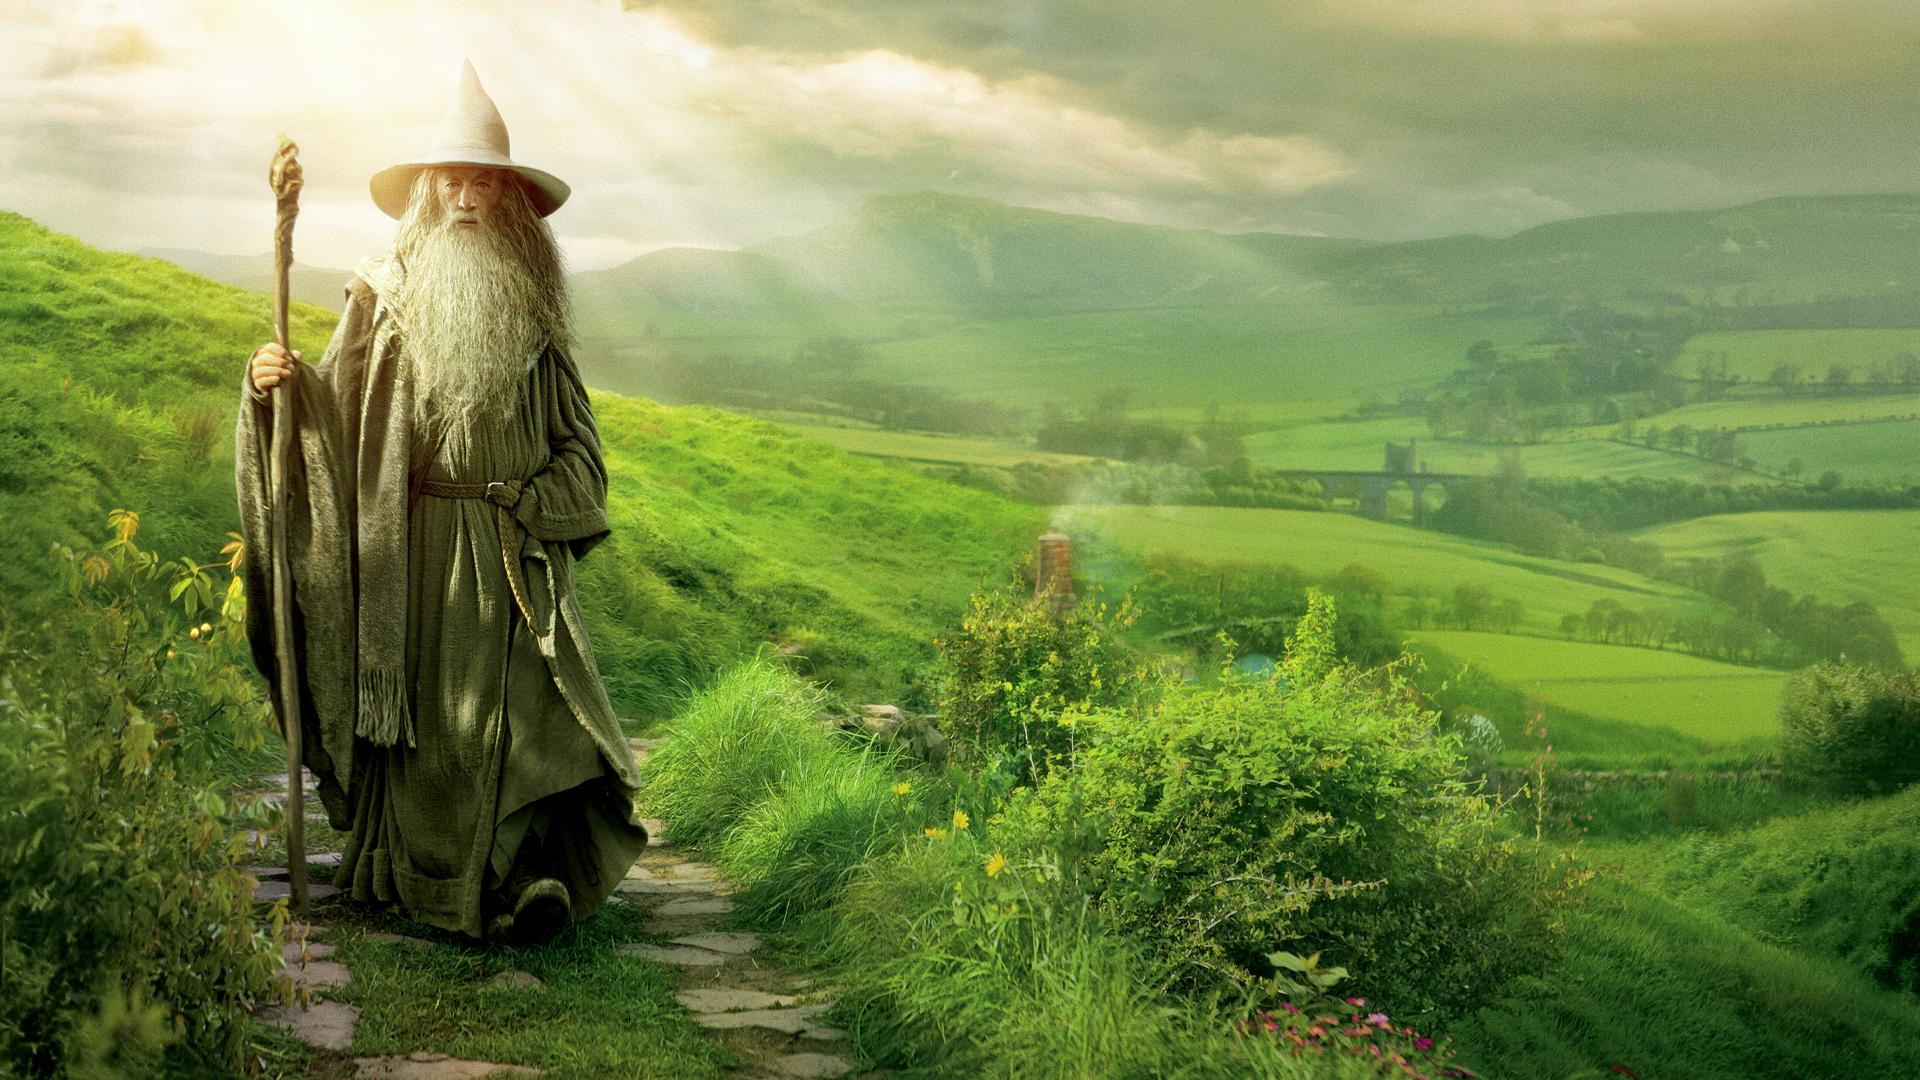 Wizard Of Oz Wallpaper 17912 1920x1080px